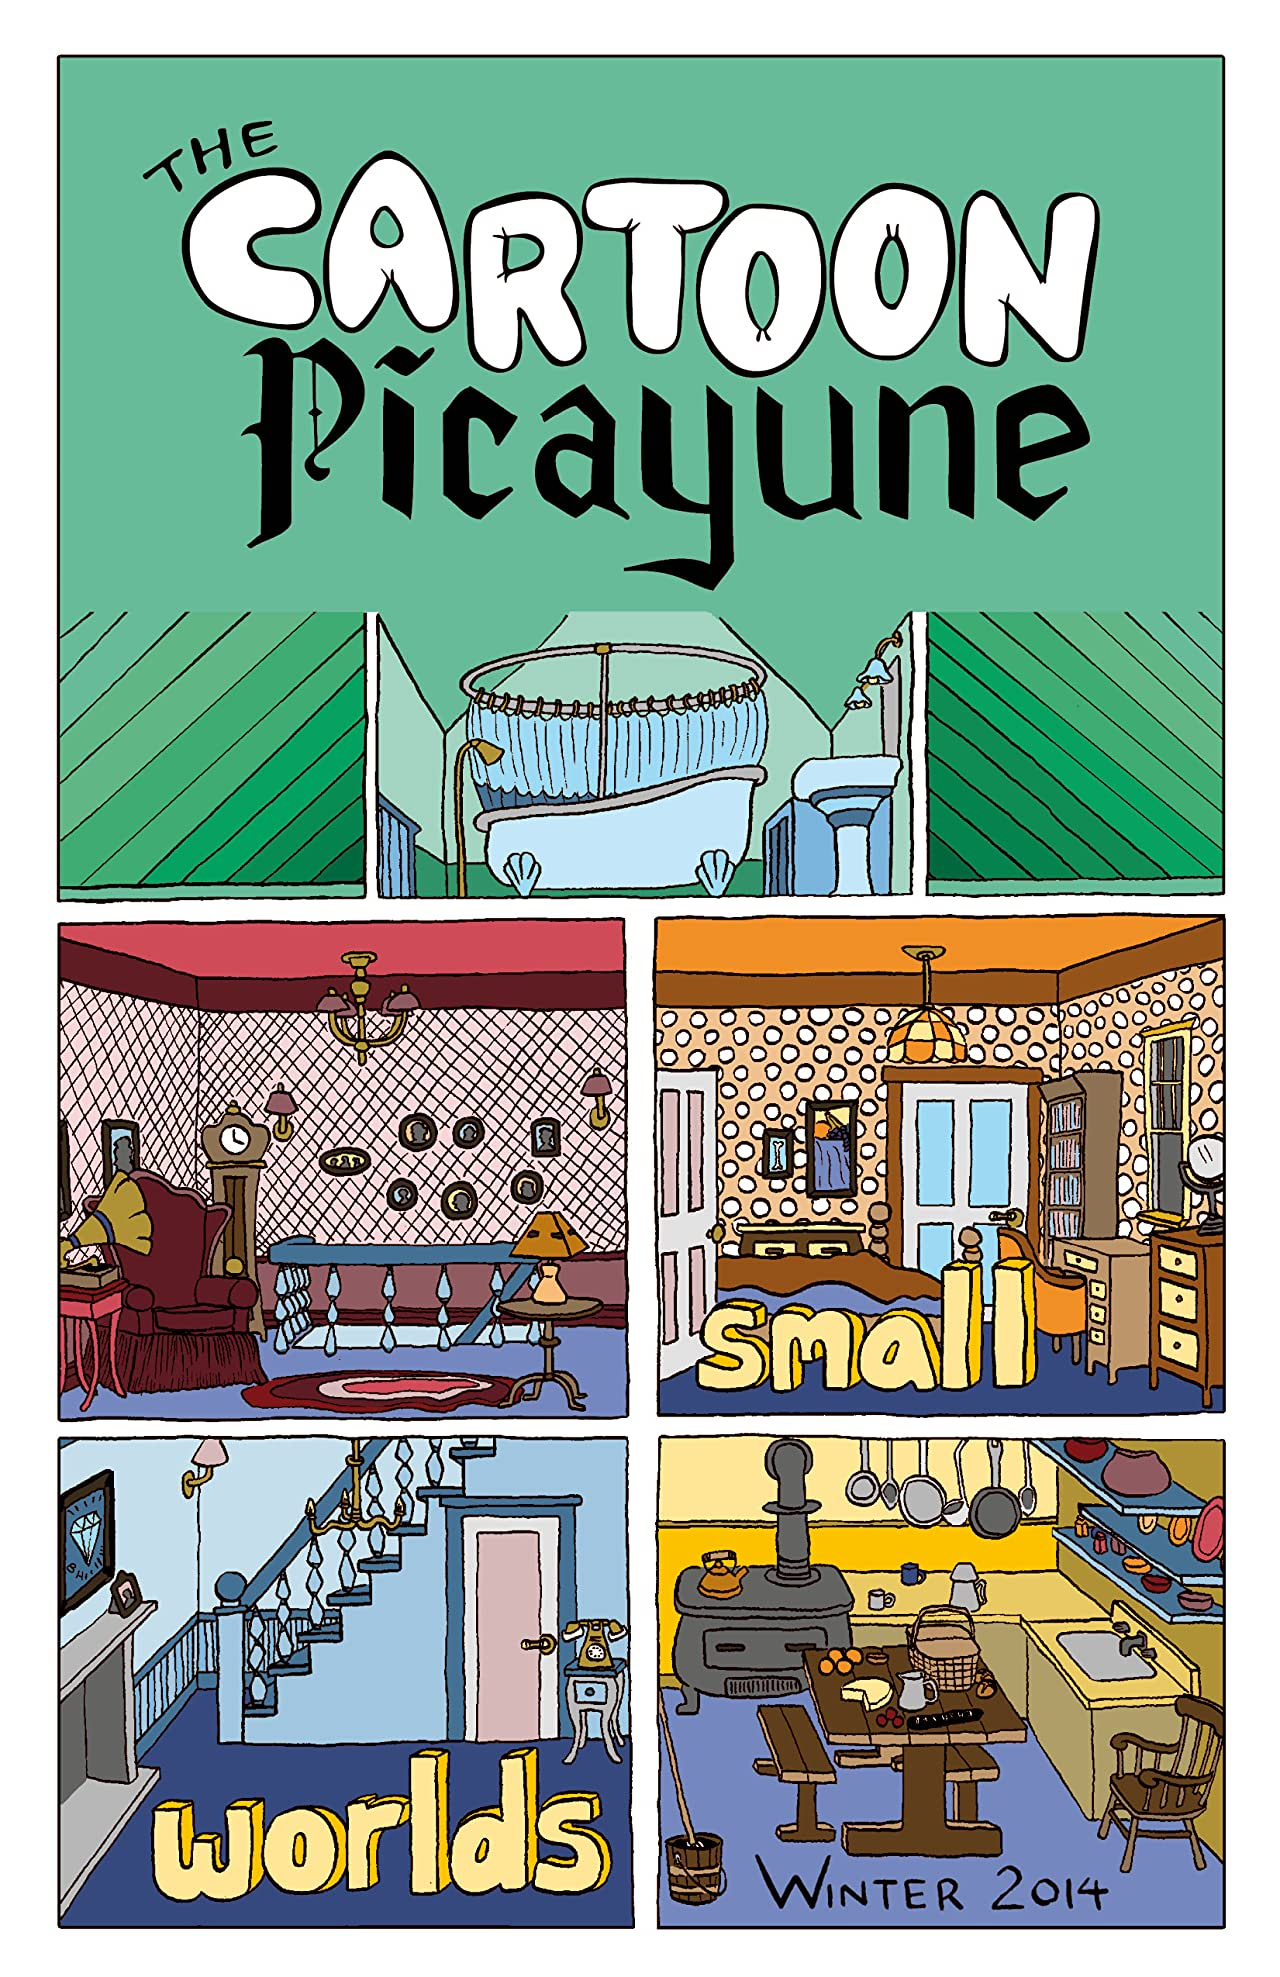 The Cartoon Picayune #6